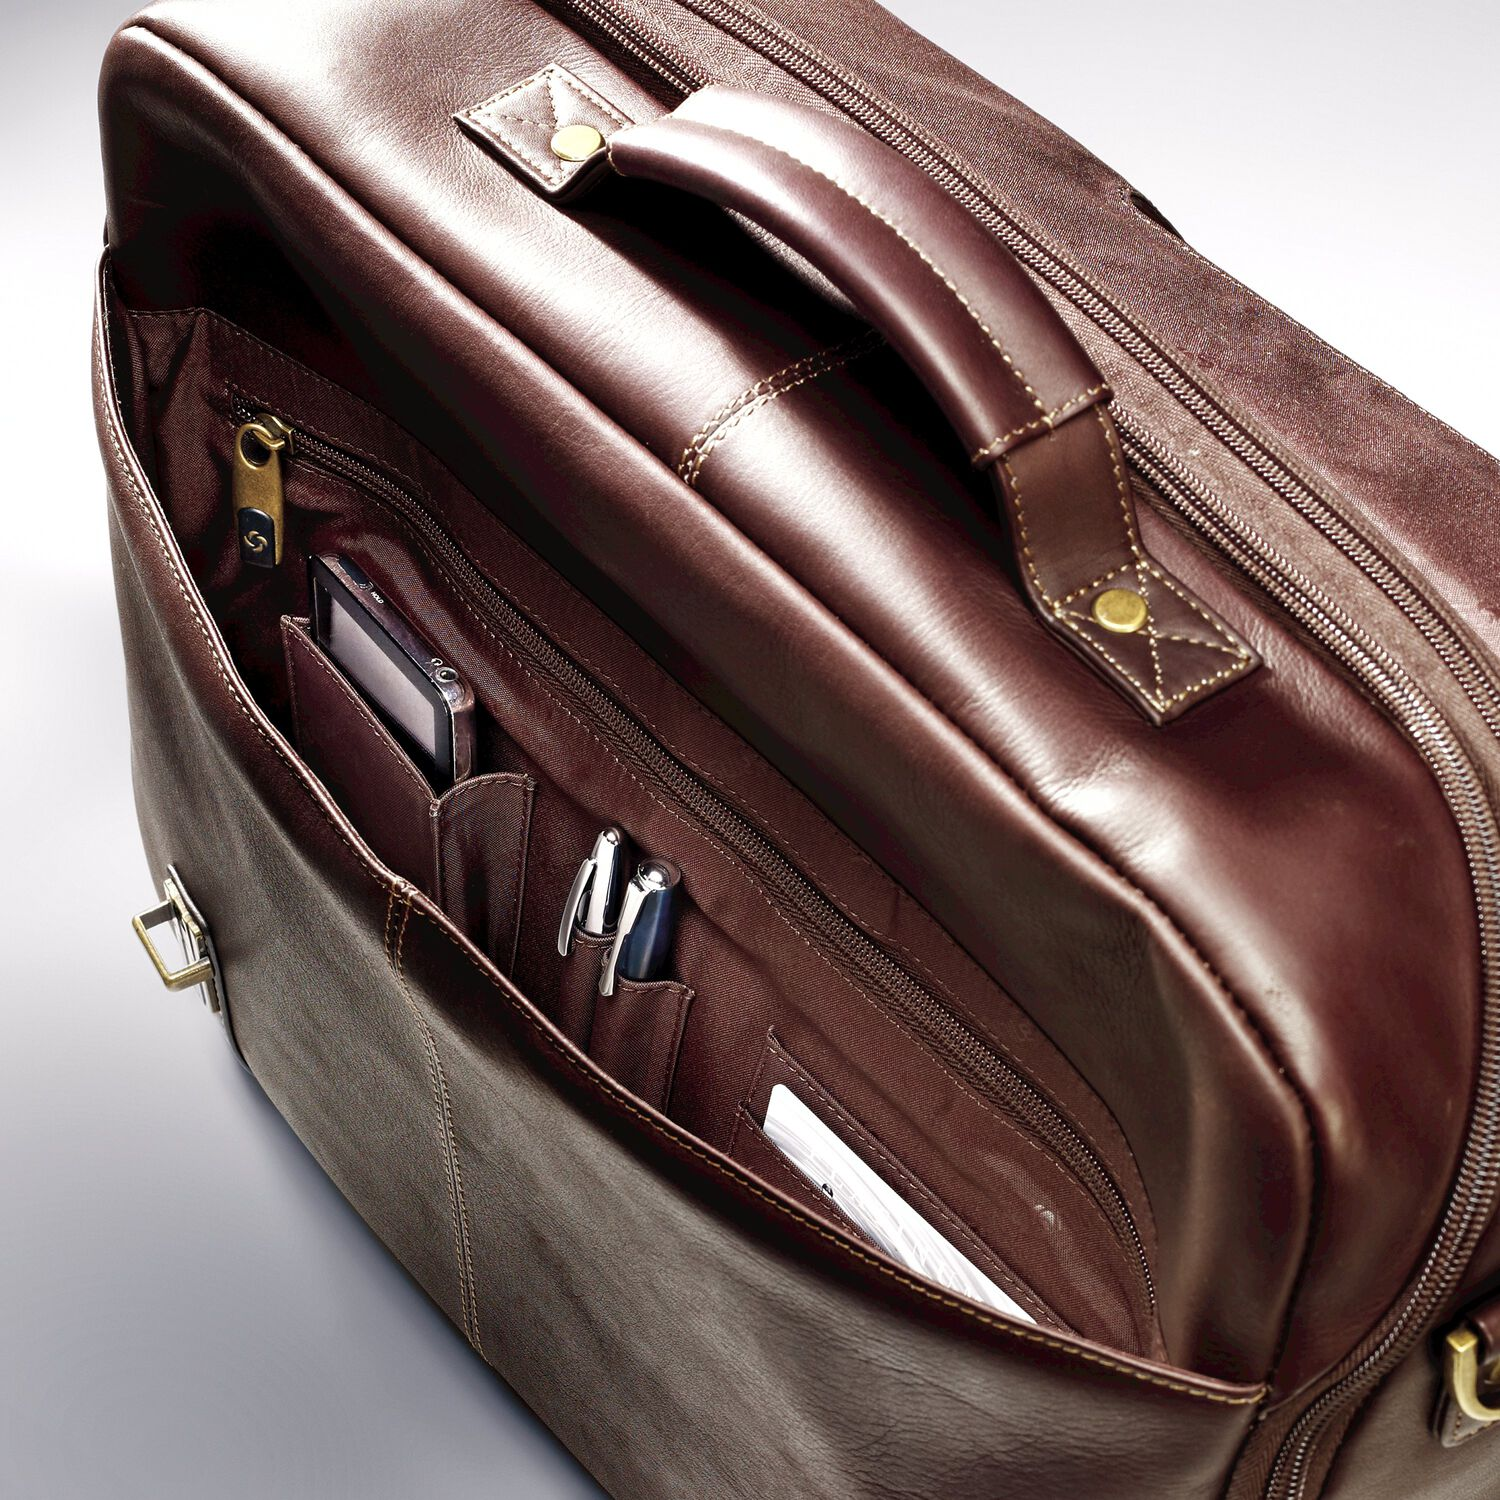 Samsonite Leather Flapover Case Double Gusset In The Color Brown